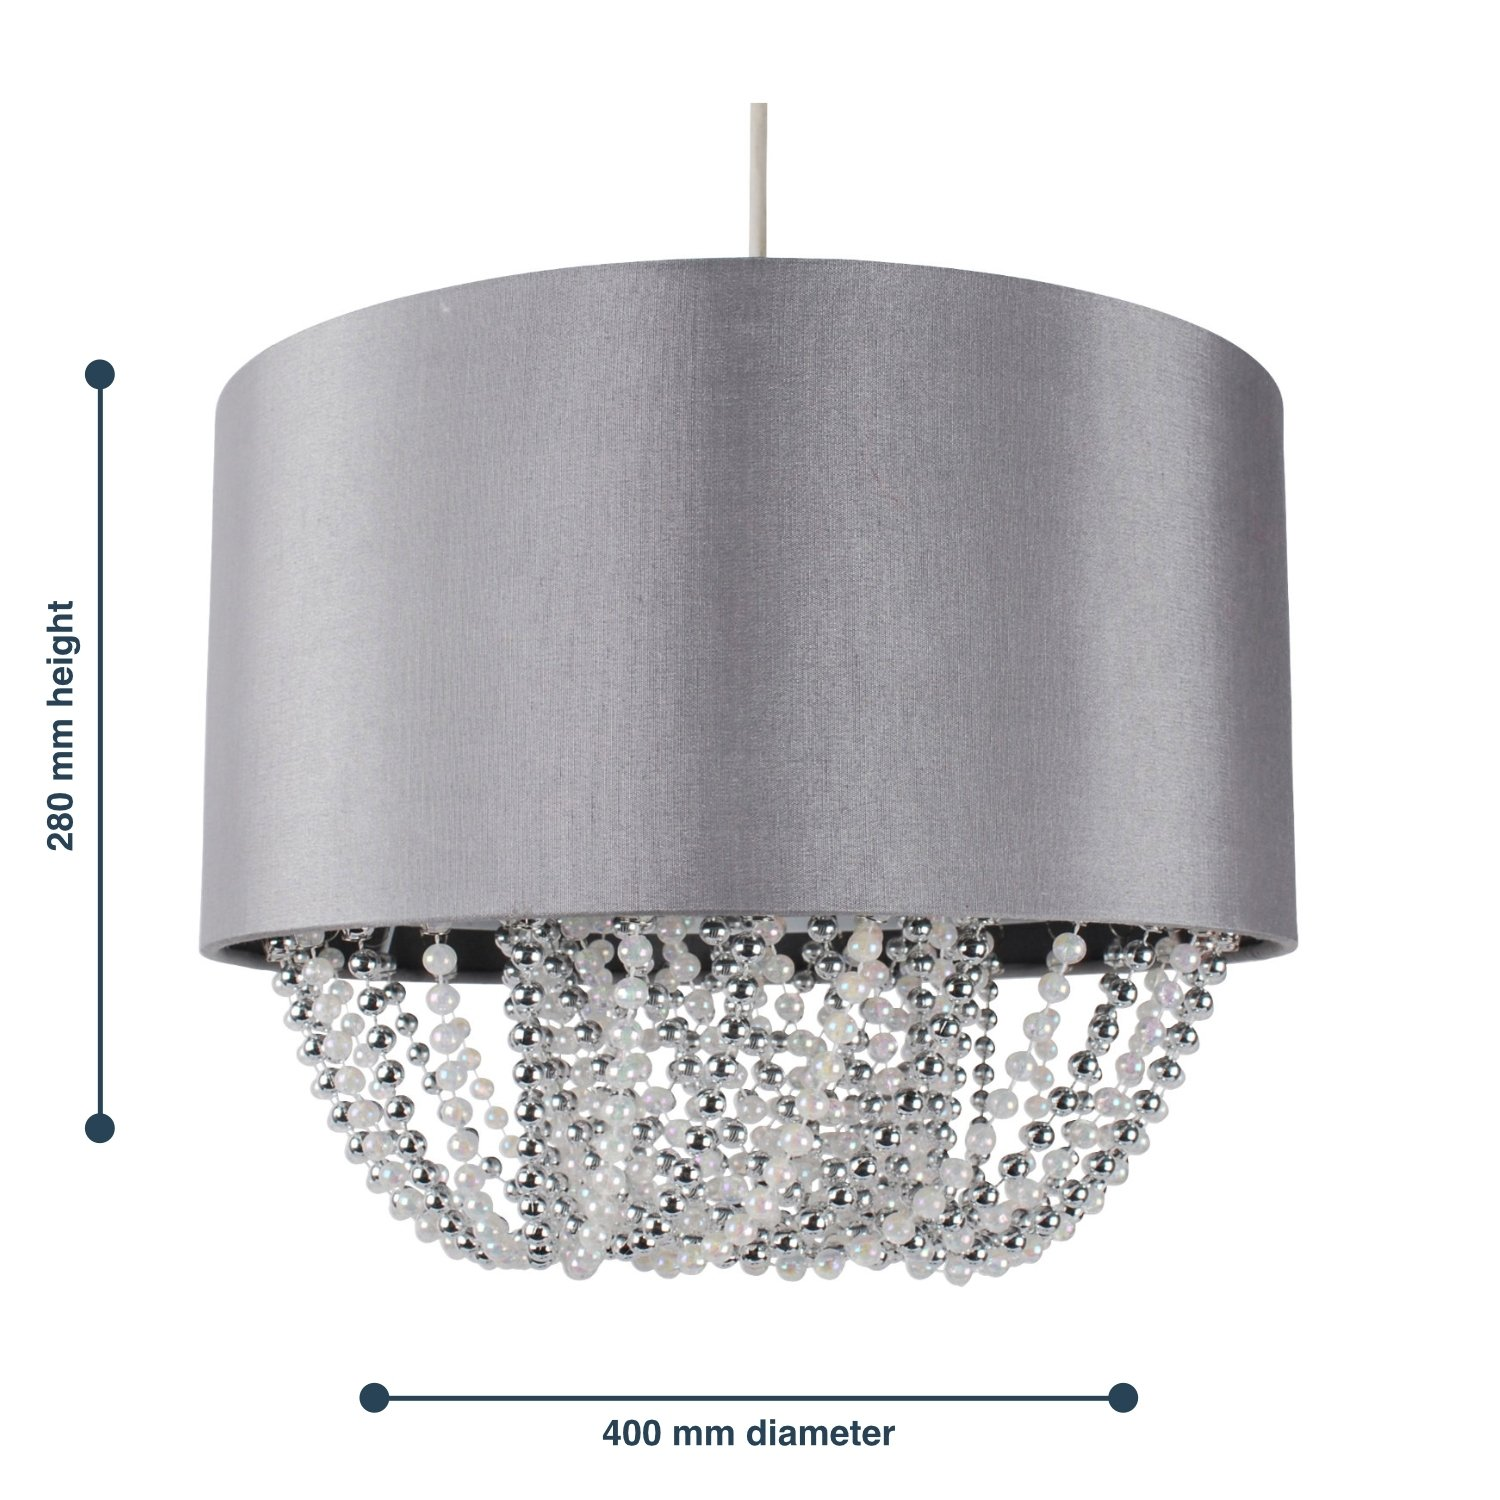 Modern Large 40cm Easy Fit Jewelled Grey Ceiling Light Chandelier Lamp Shade